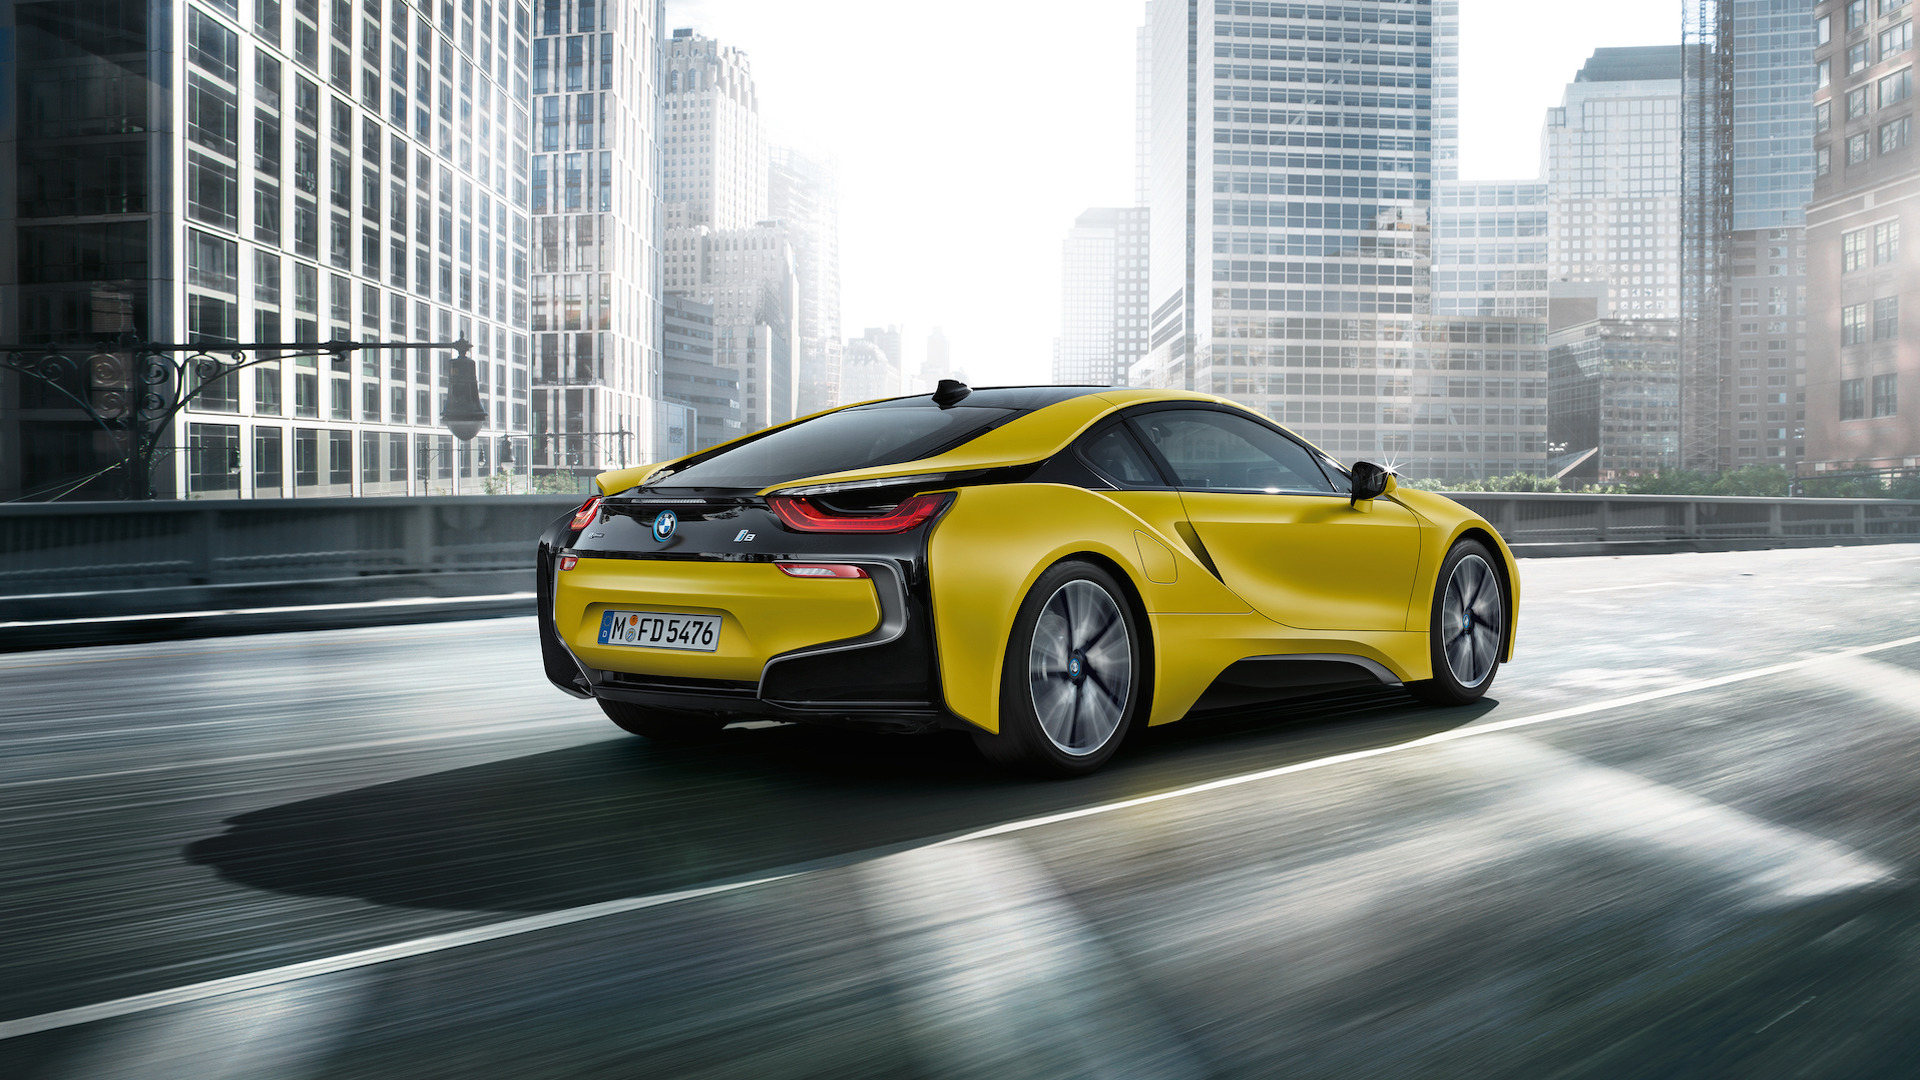 bmw-i8-frozen-black-and-yellow (7).jpg